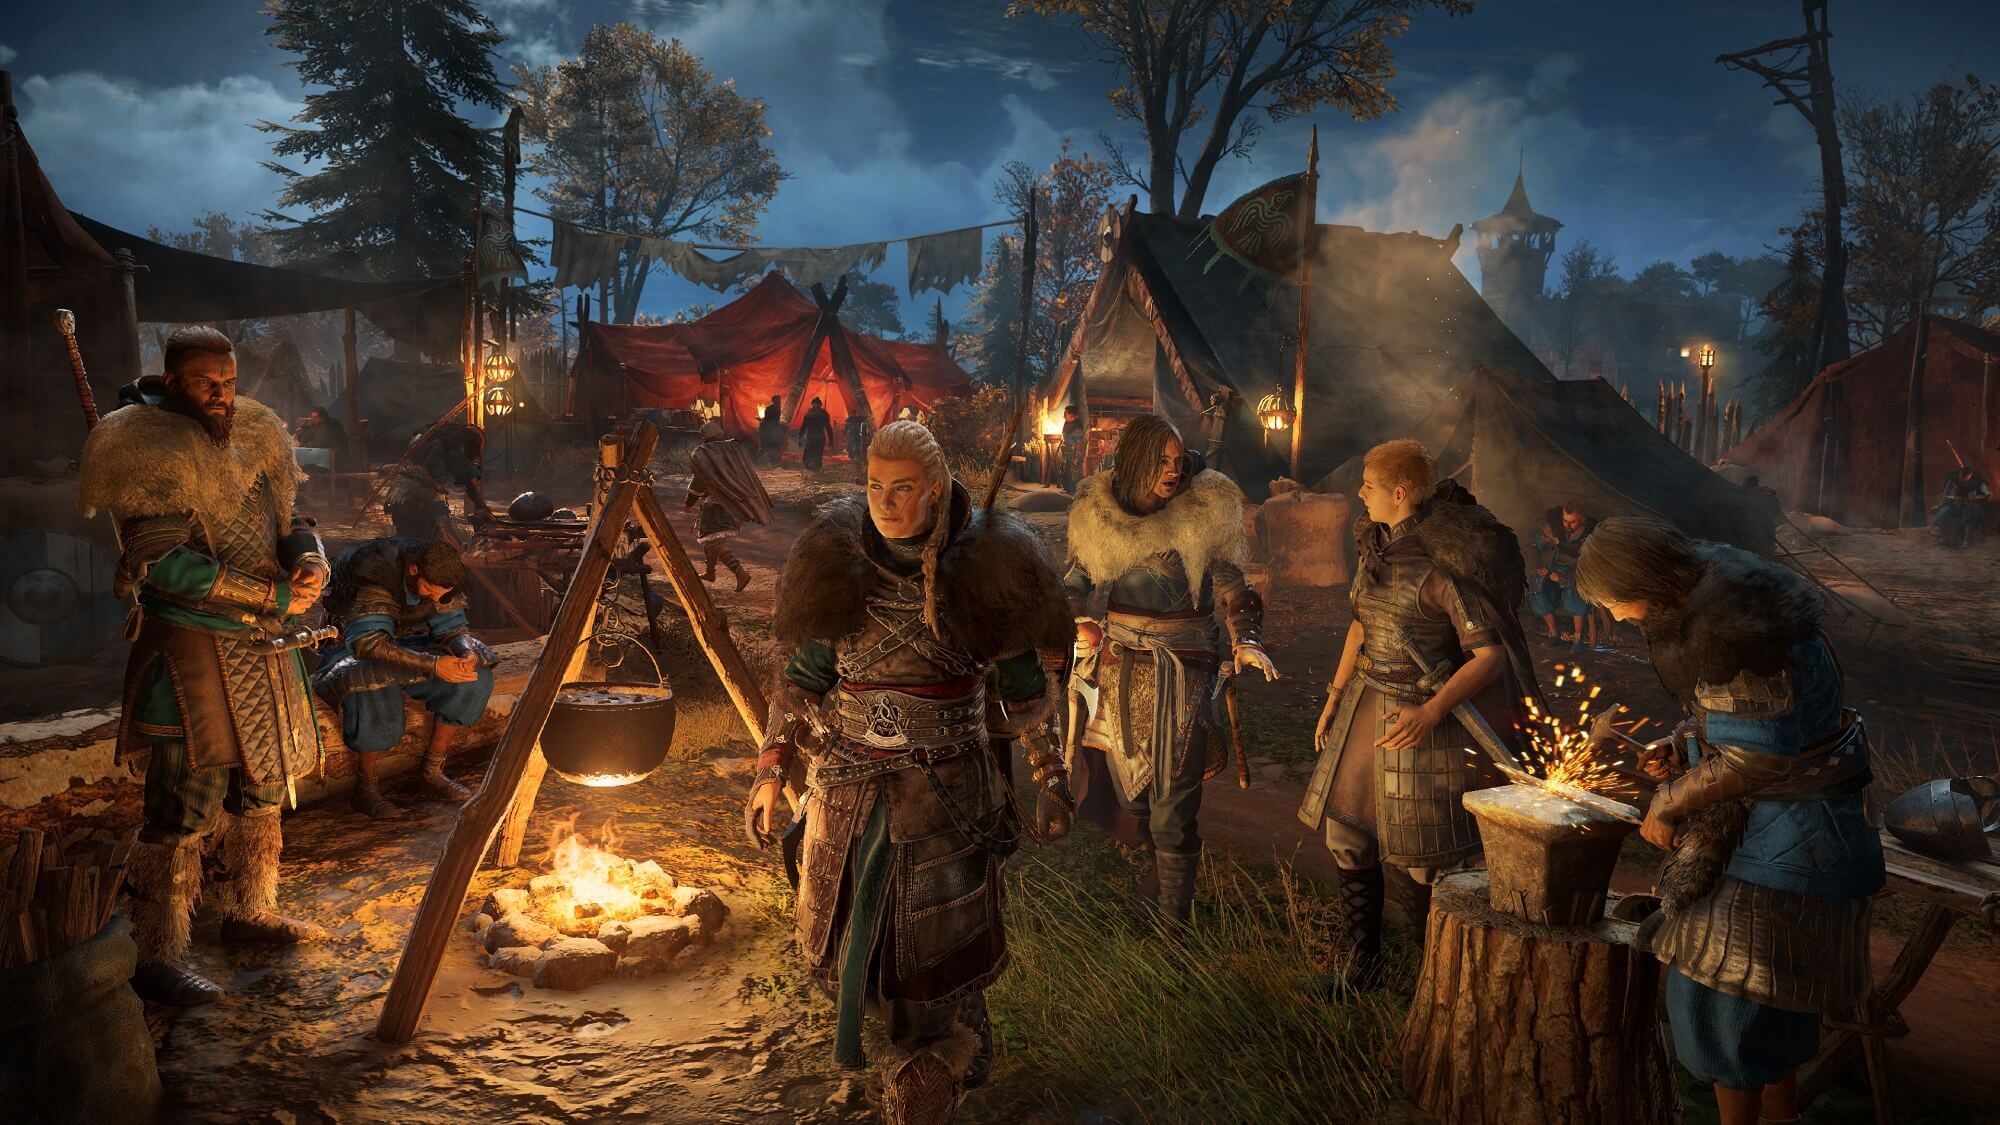 Assasins Creed Valhalla: Protagonistin Eivor läuft durch ein Norweger-Camp